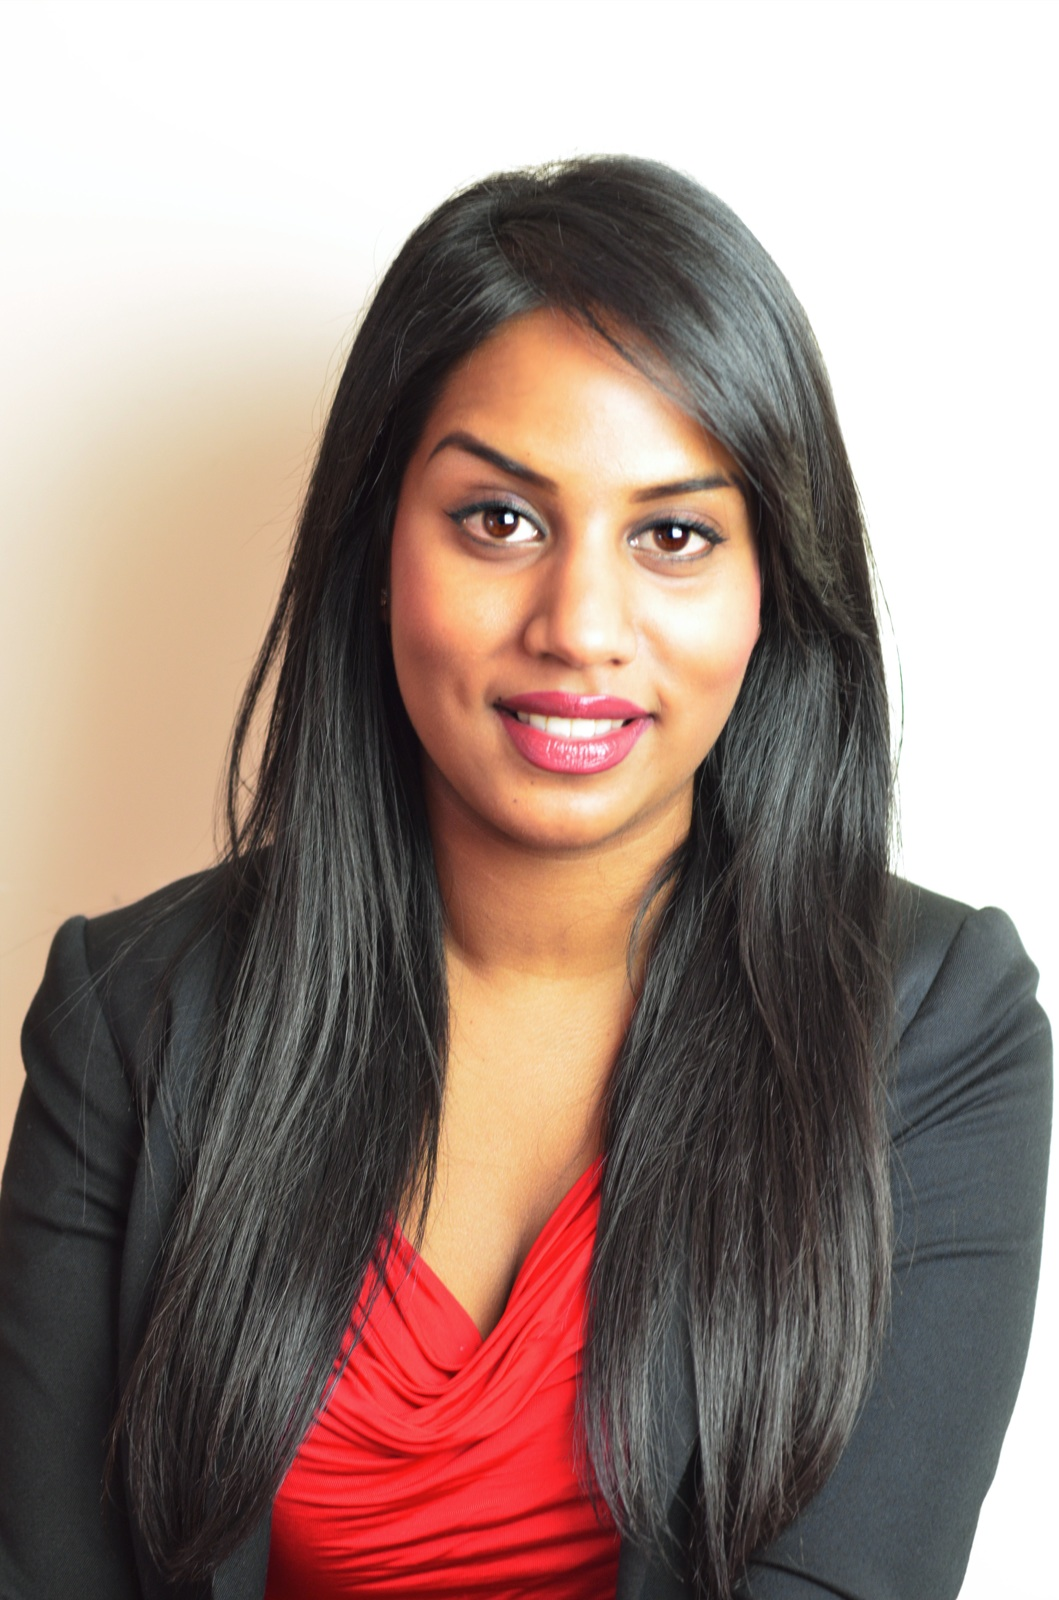 A Daughter Of Sri Lankan Tamil To Contest For Labour Party In Harrow